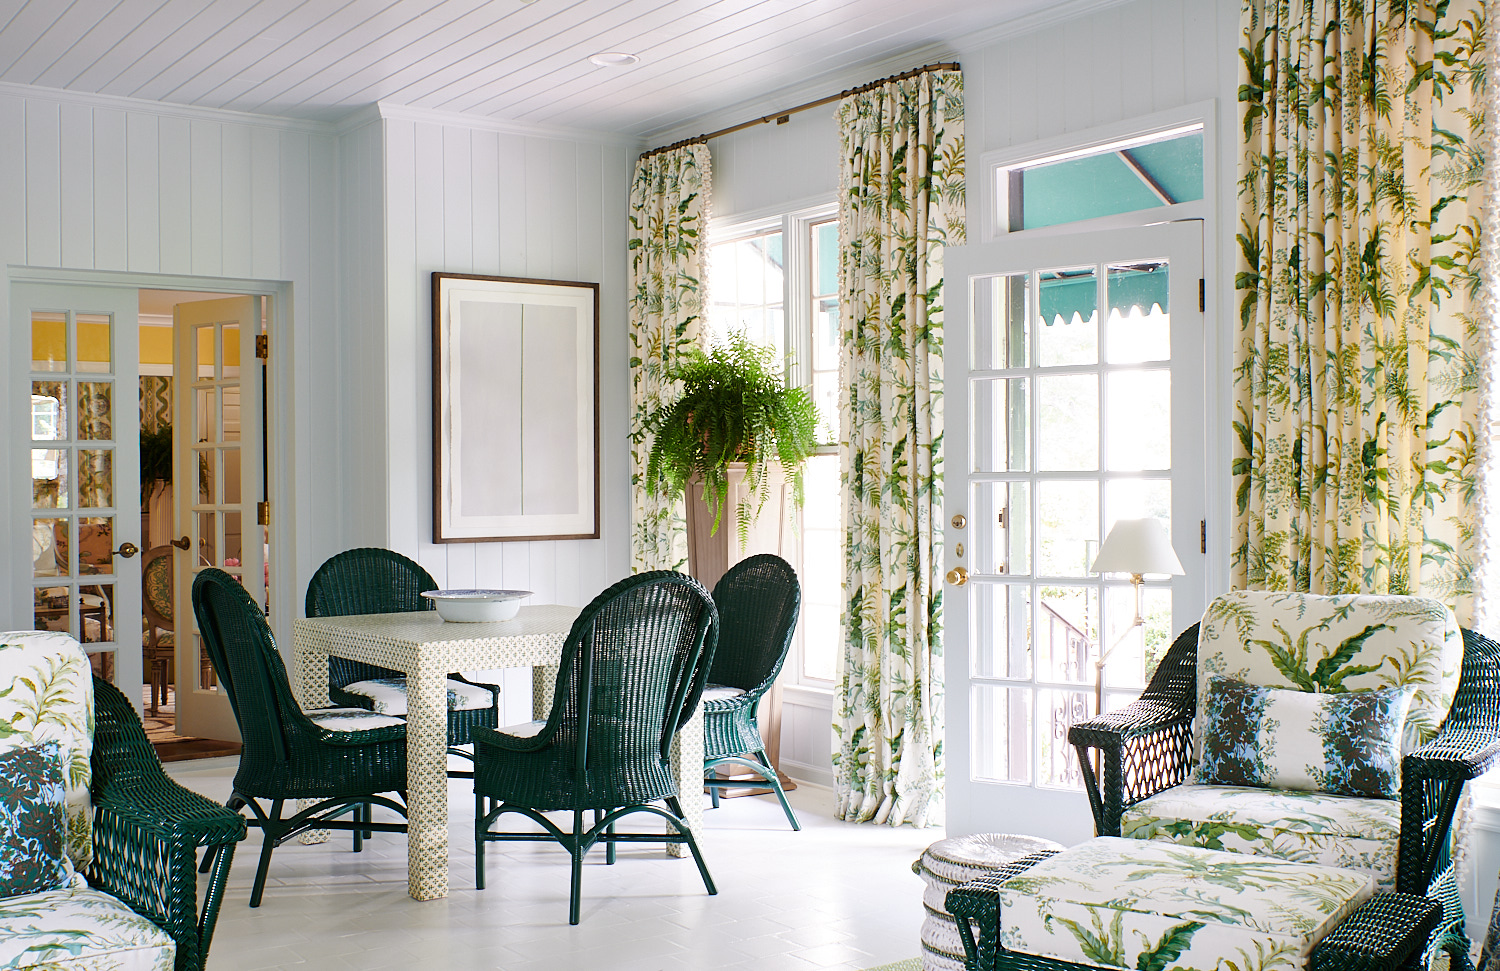 Wide view sun room with floral roman shades, wicker tea chairs with matching cushions and ottomans